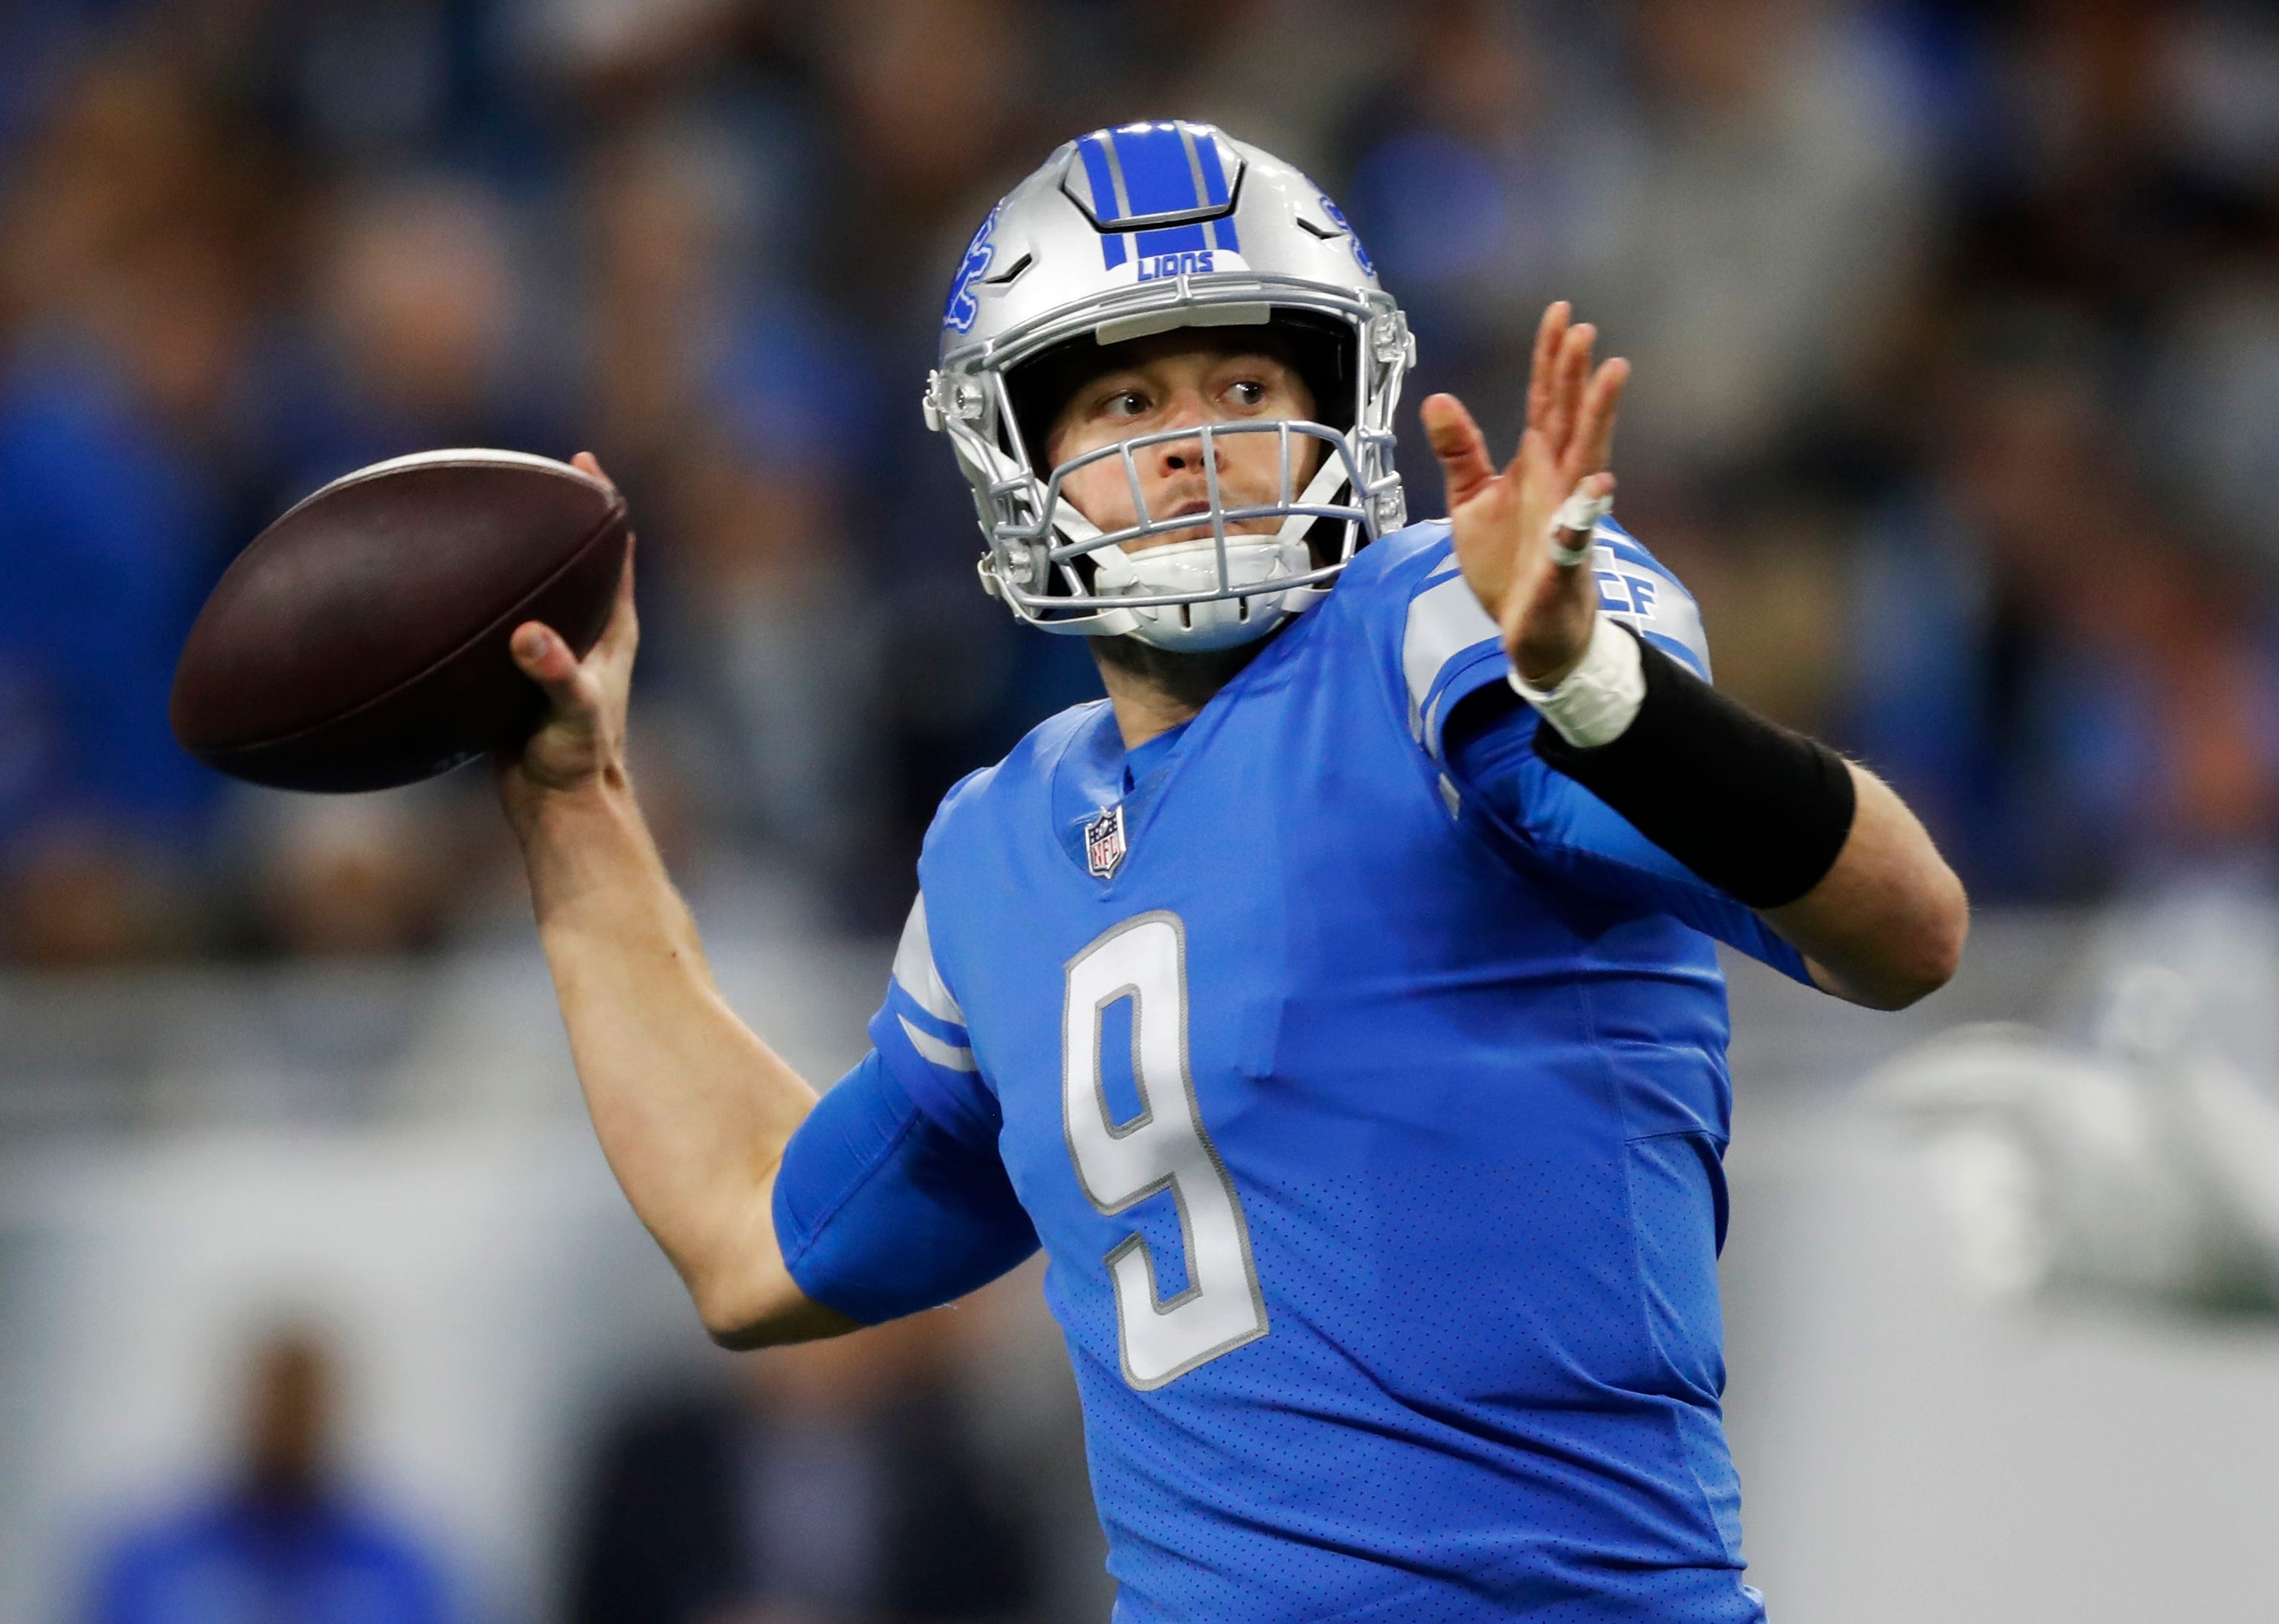 Lions quarterback Matthew Stafford throws against the Minnesota Vikings during the first half on Sunday, Dec. 23, 2018, at Ford Field.